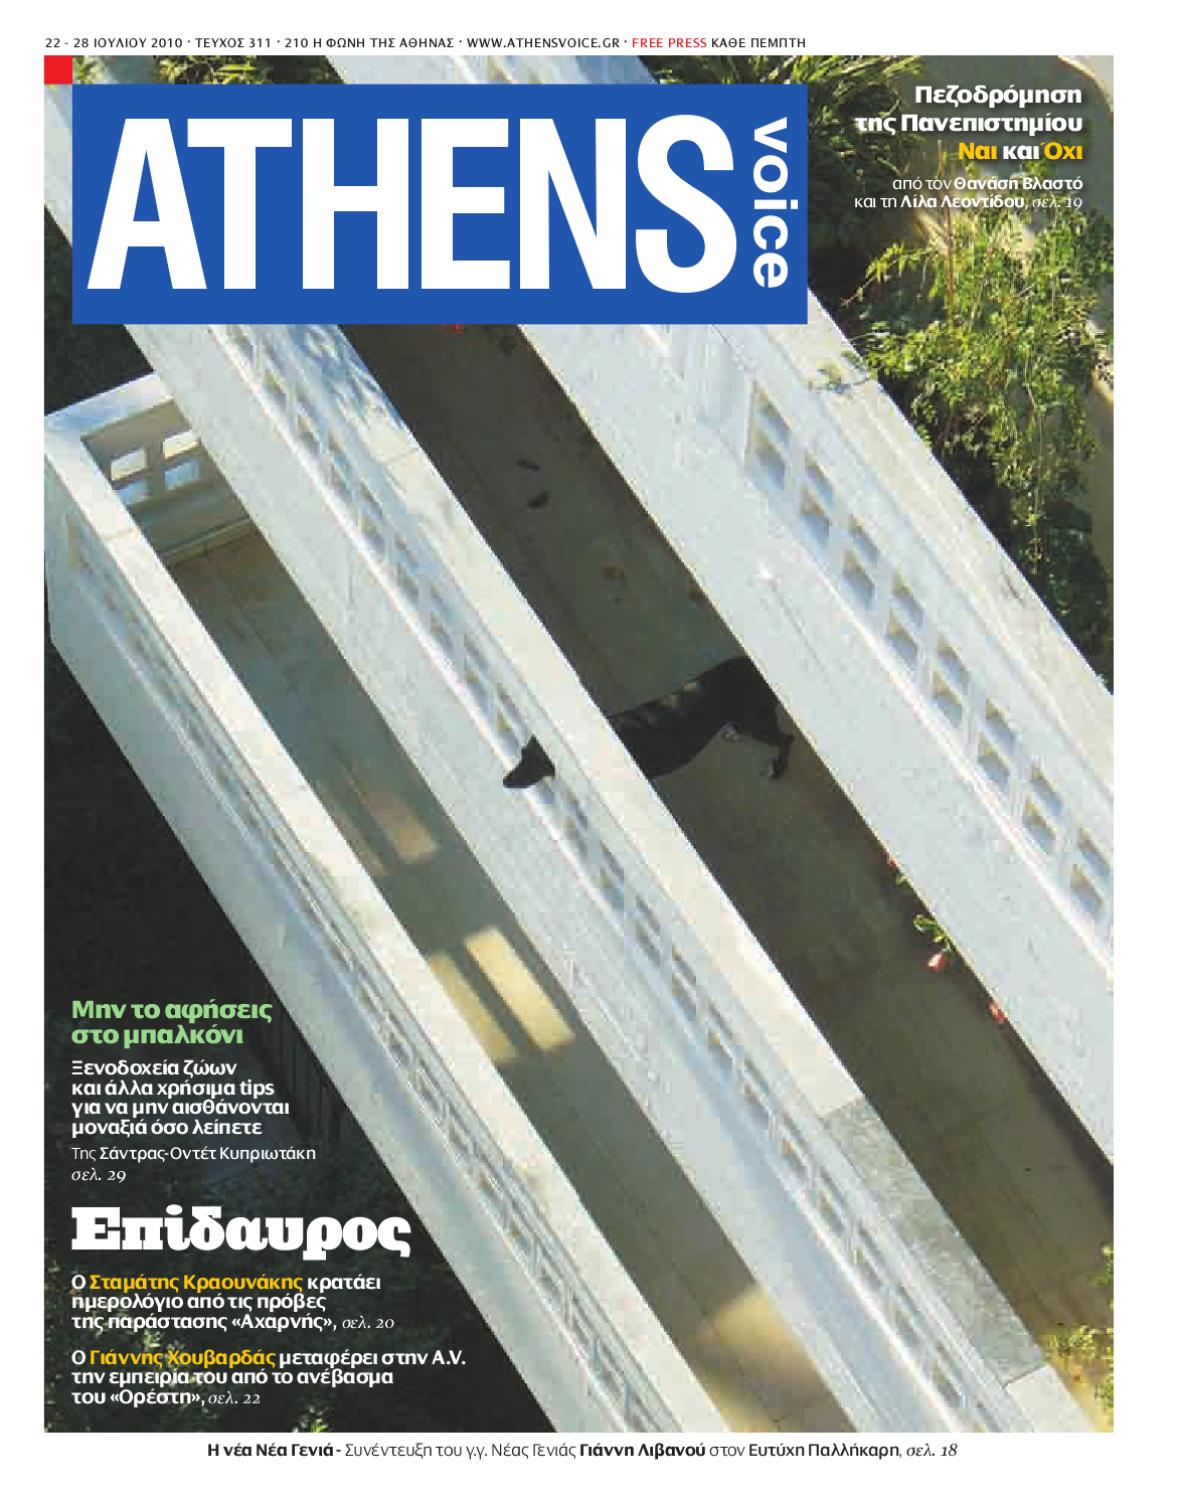 c88443a6fb4 Athens Voice 311 by Athens Voice - issuu